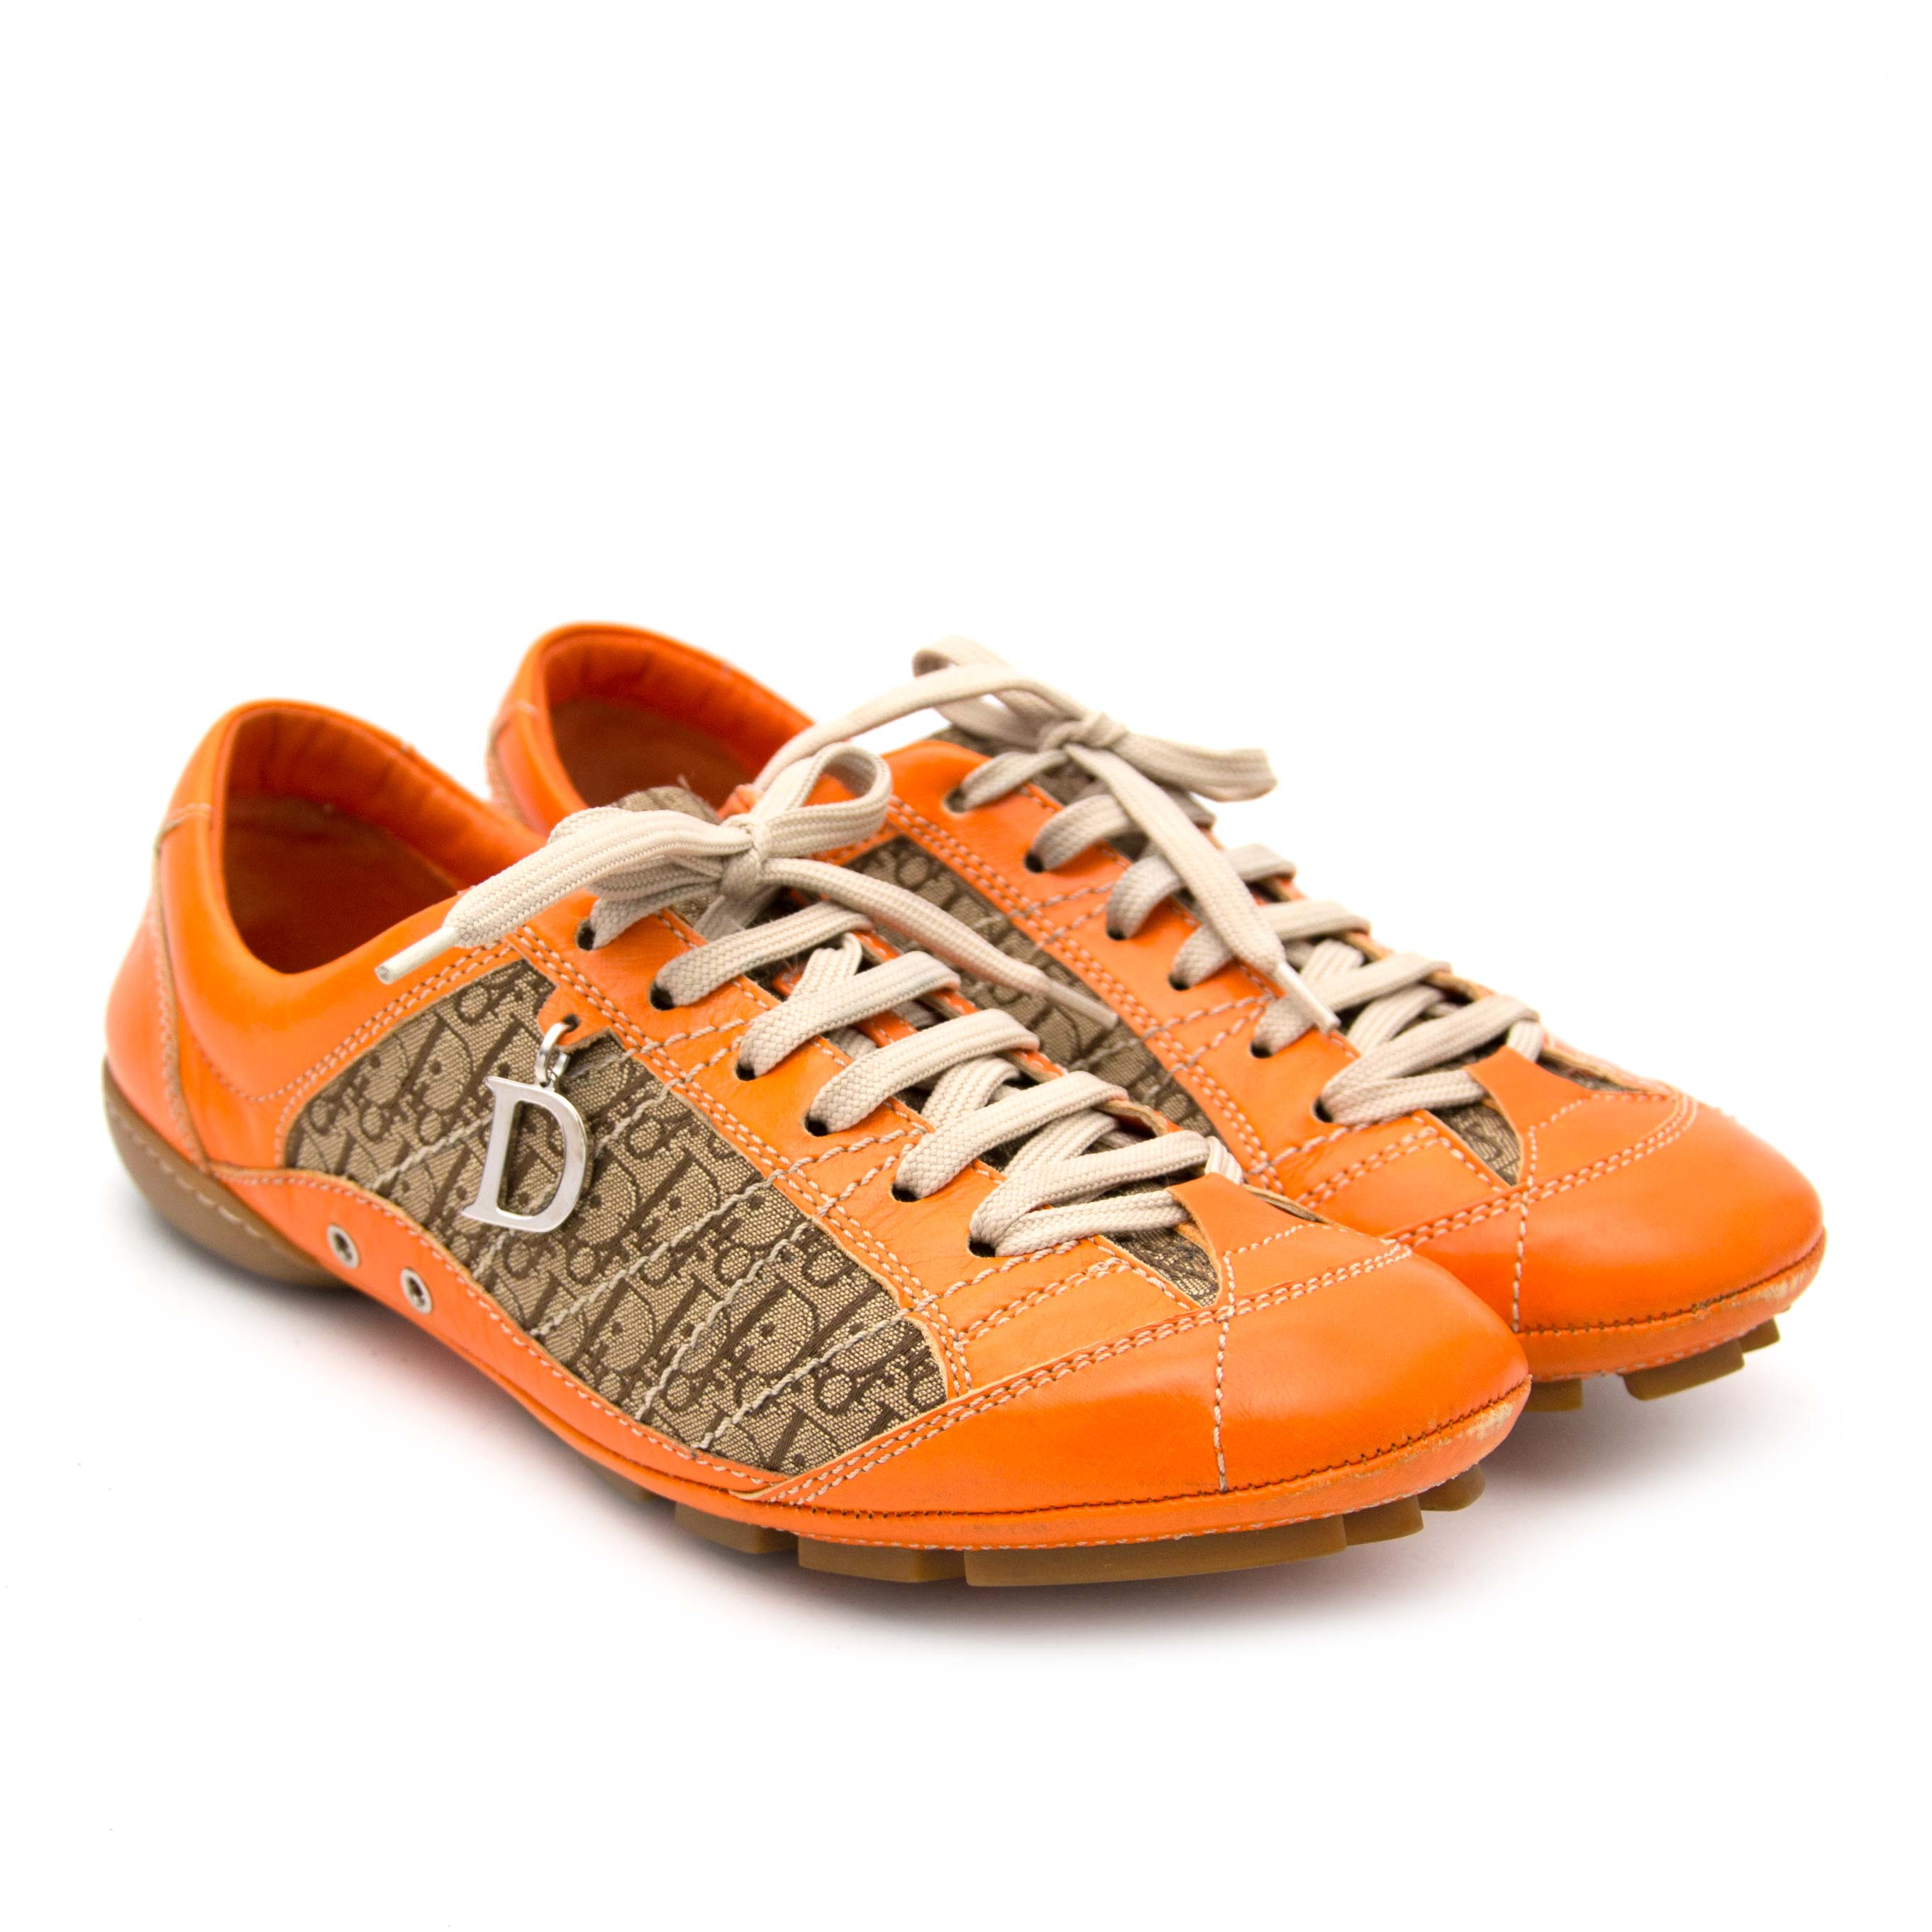 Christian Dior Diorissimo Orange Driver Sneakers for sale